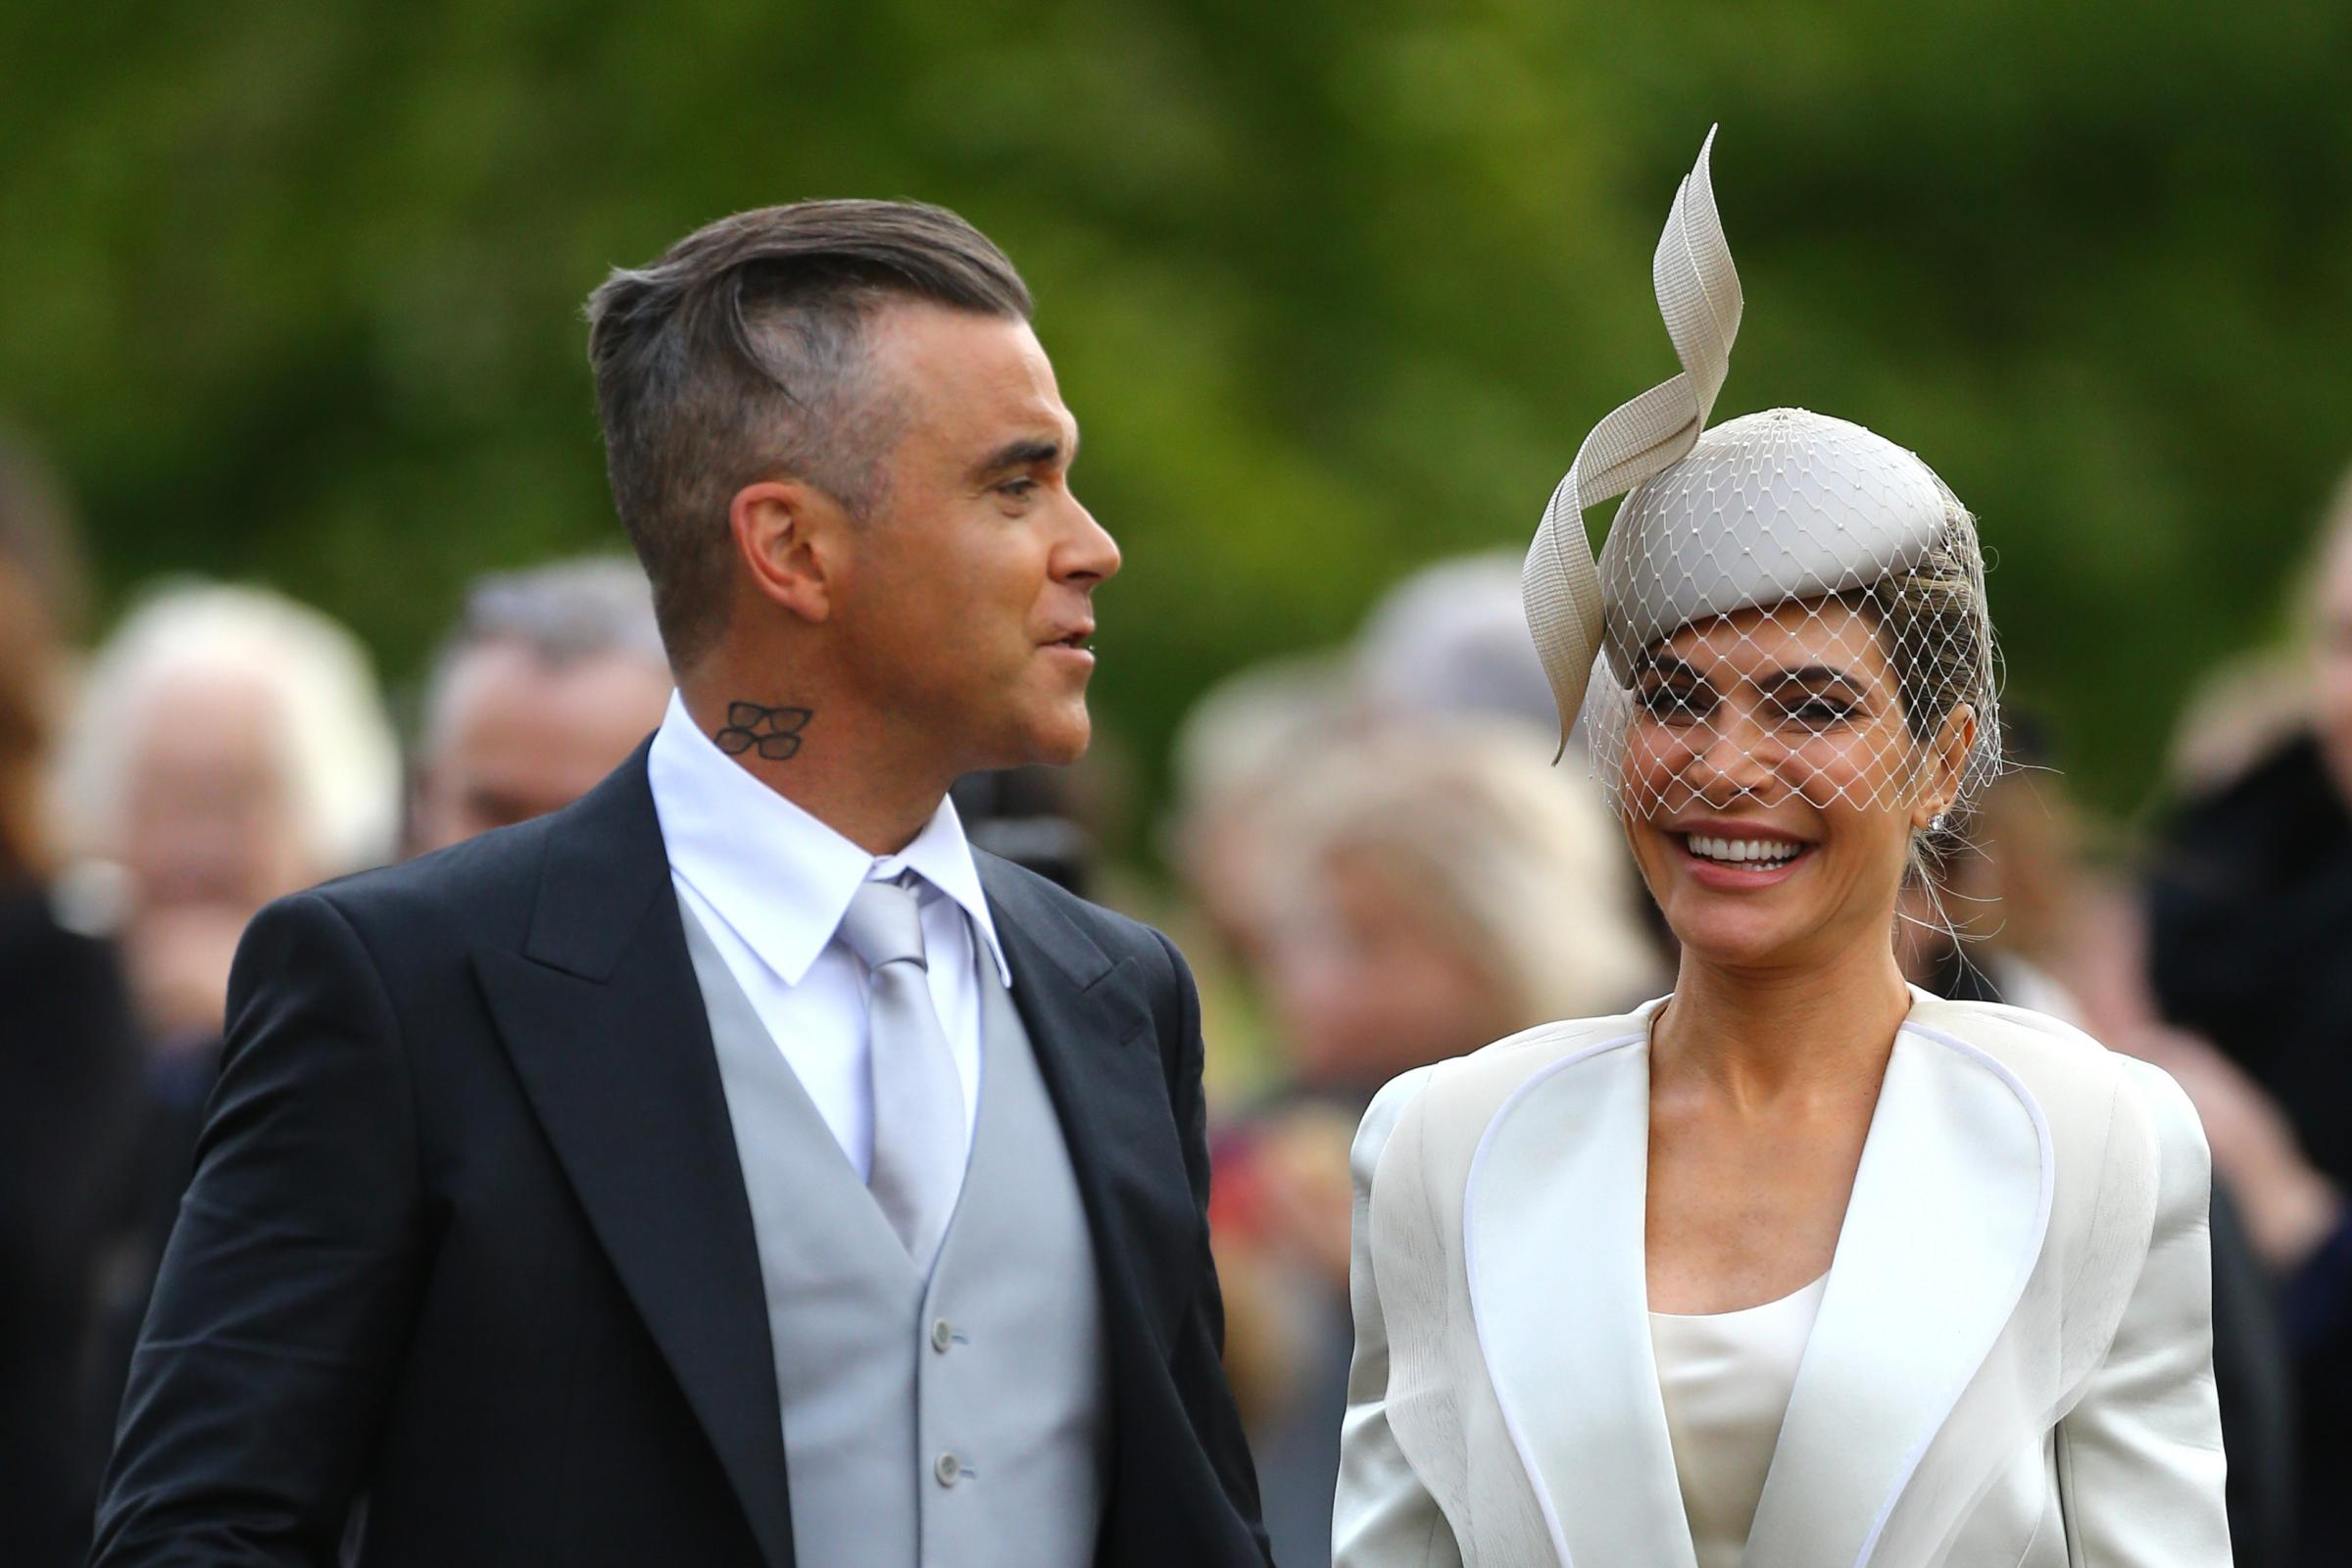 Robbie Williams and Ayda Field arrive at the wedding